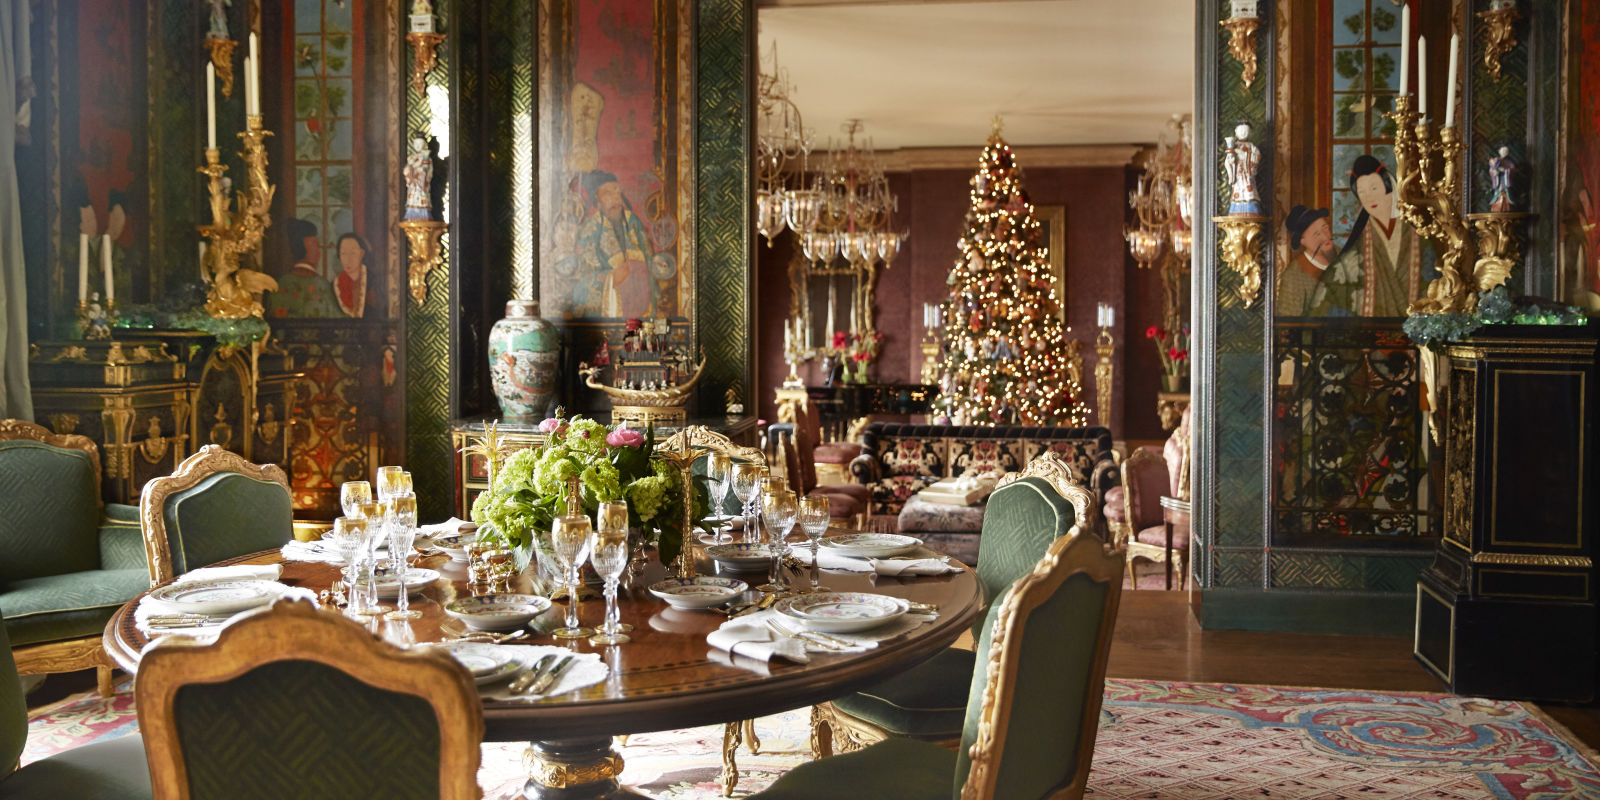 Christmas Decorated House San Francisco : Gold christmas decorations ann and gordon getty s san